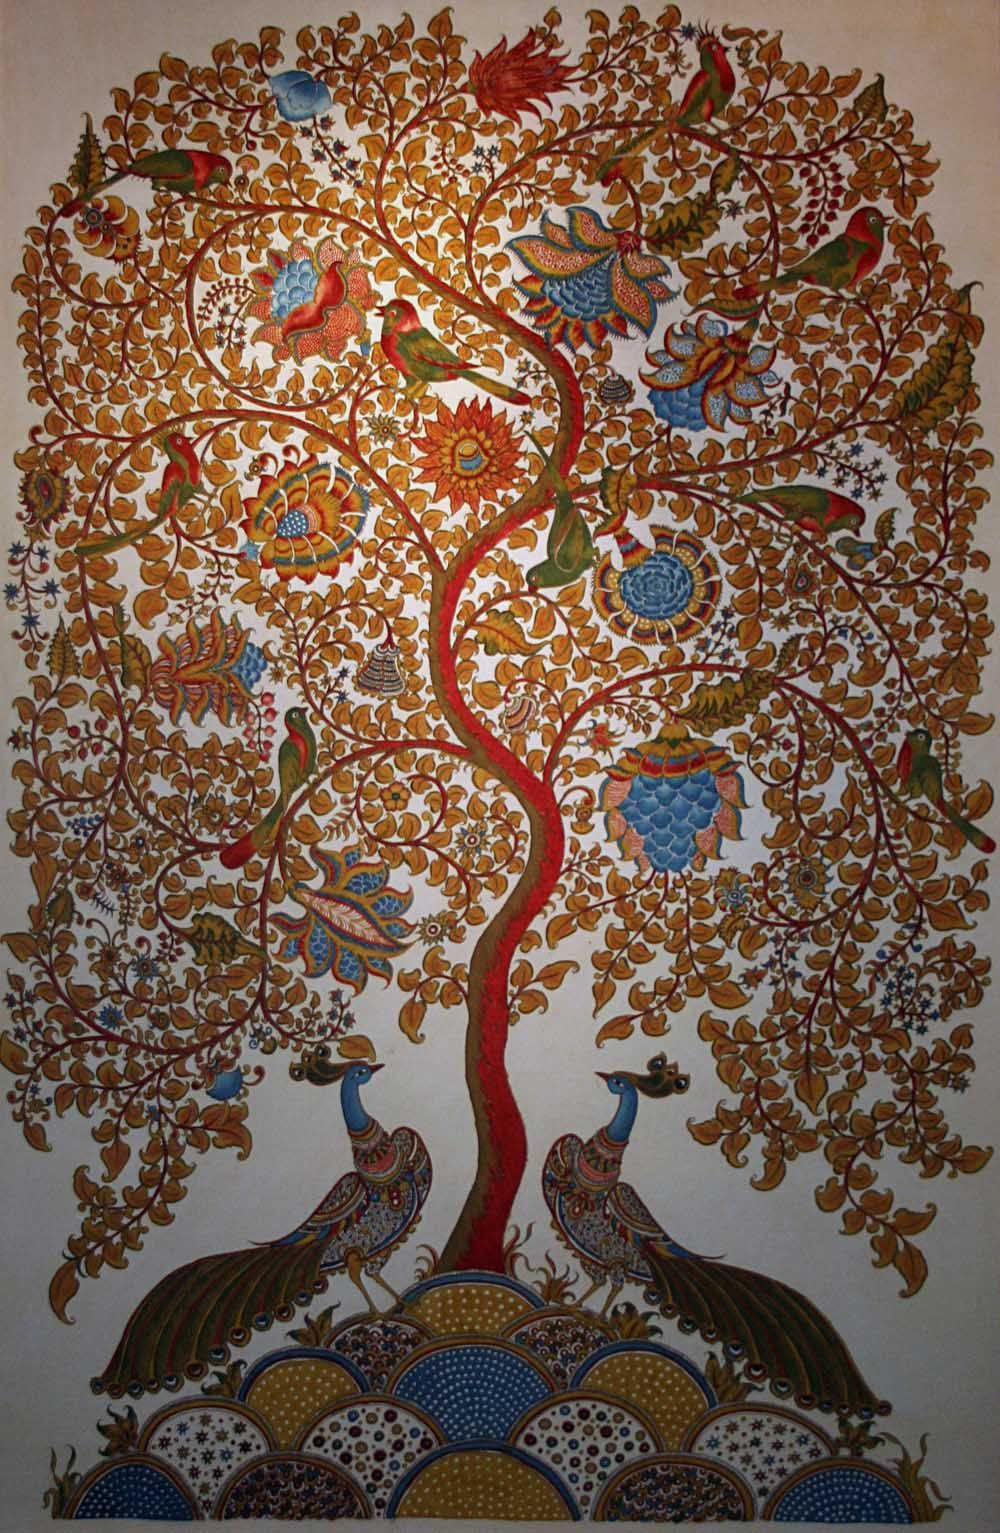 Tree of Life 'Kalamkari' painting. The 3000 yr old ancient ...